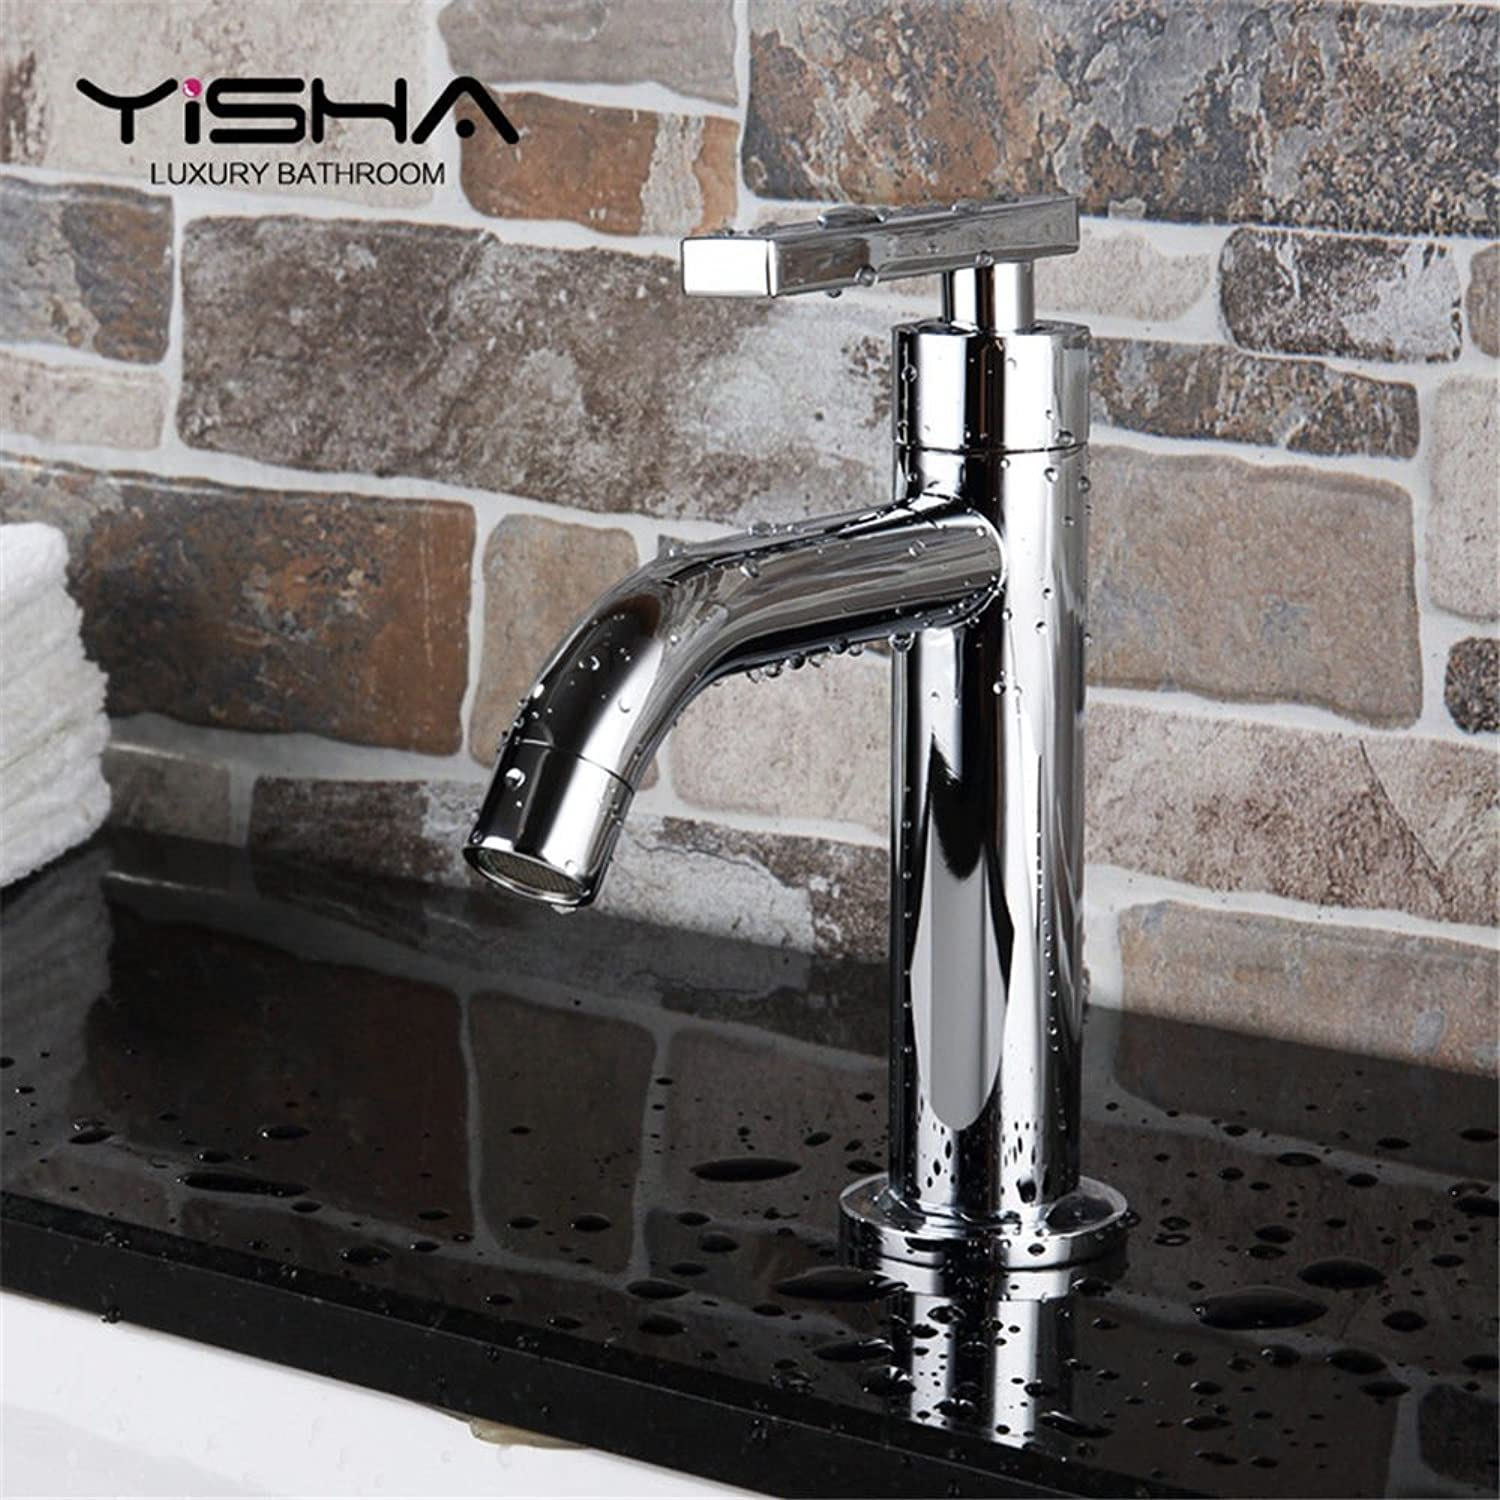 ETERNAL QUALITY Bathroom Sink Basin Tap Brass Mixer Tap Washroom Mixer Faucet The bathrooms are a cold wash basins taps full copper washing basin SINGLE LEVER SINGLE HOLE